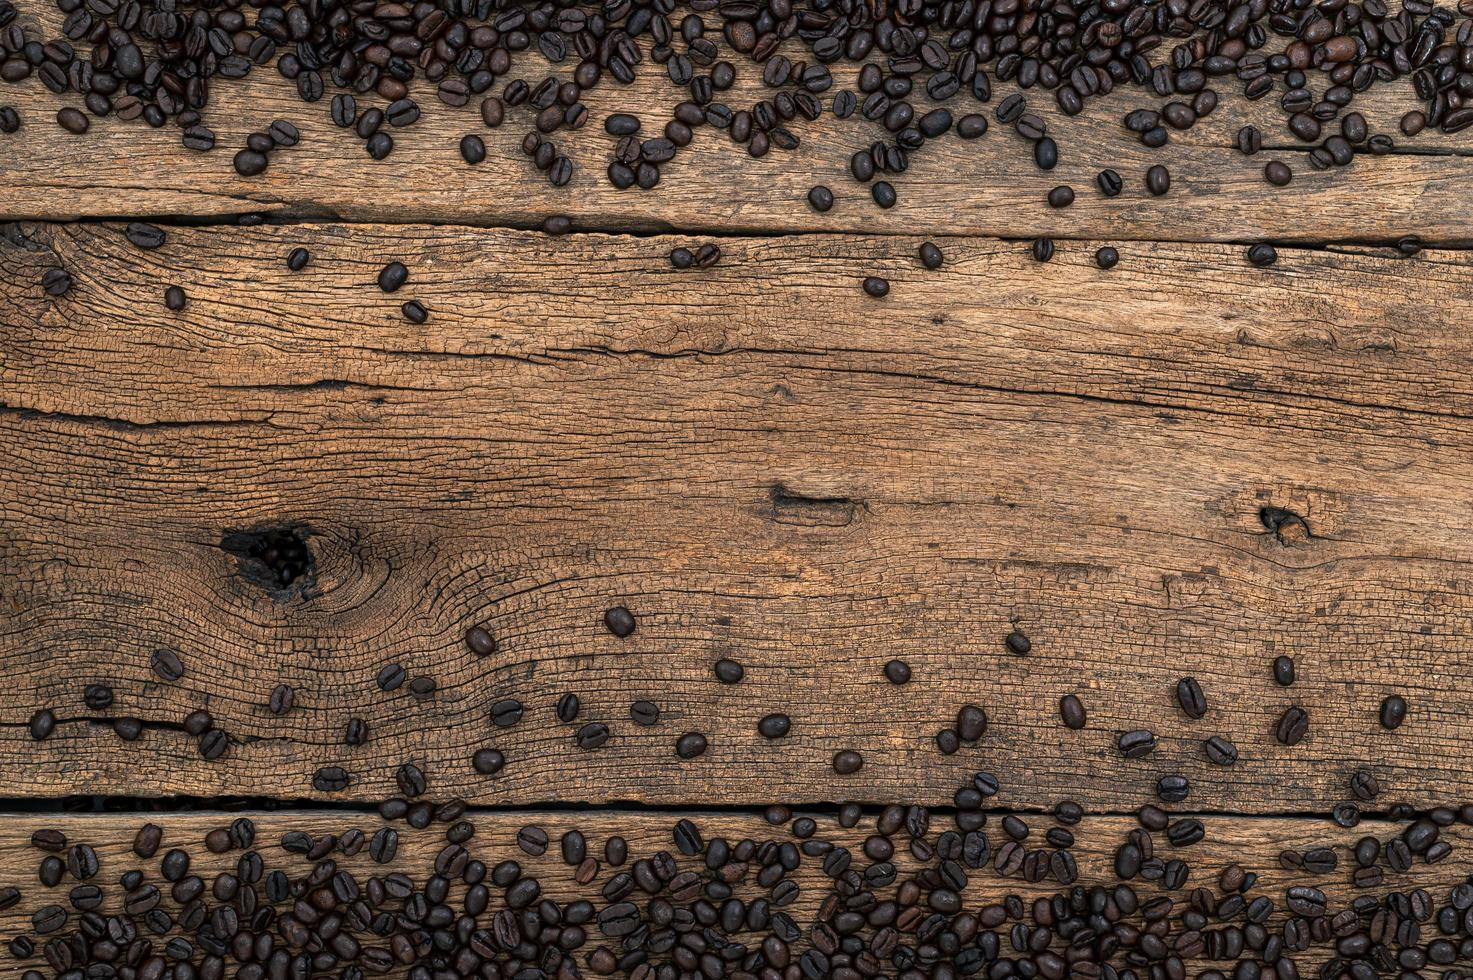 Coffee beans on the desk, top view photo